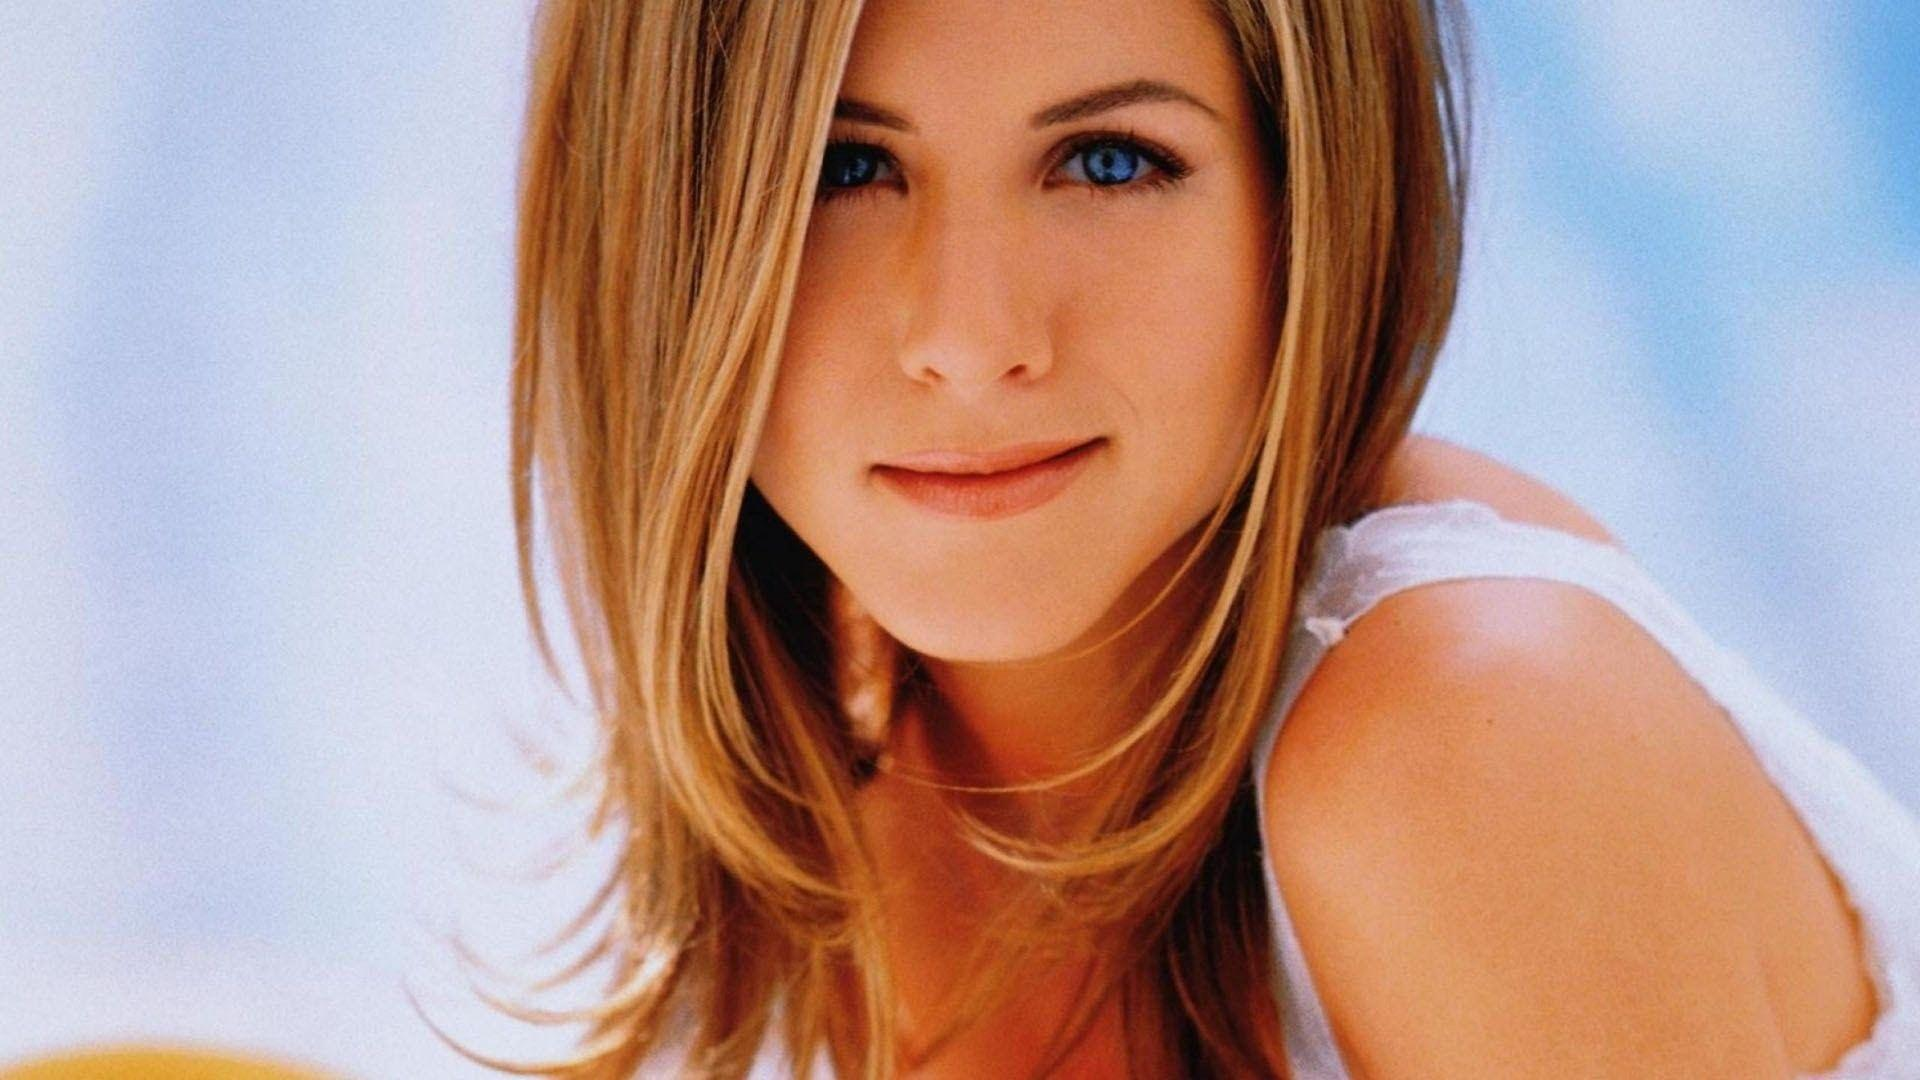 Jennifer Aniston Wallpapers | Free Download HD English Actress Images